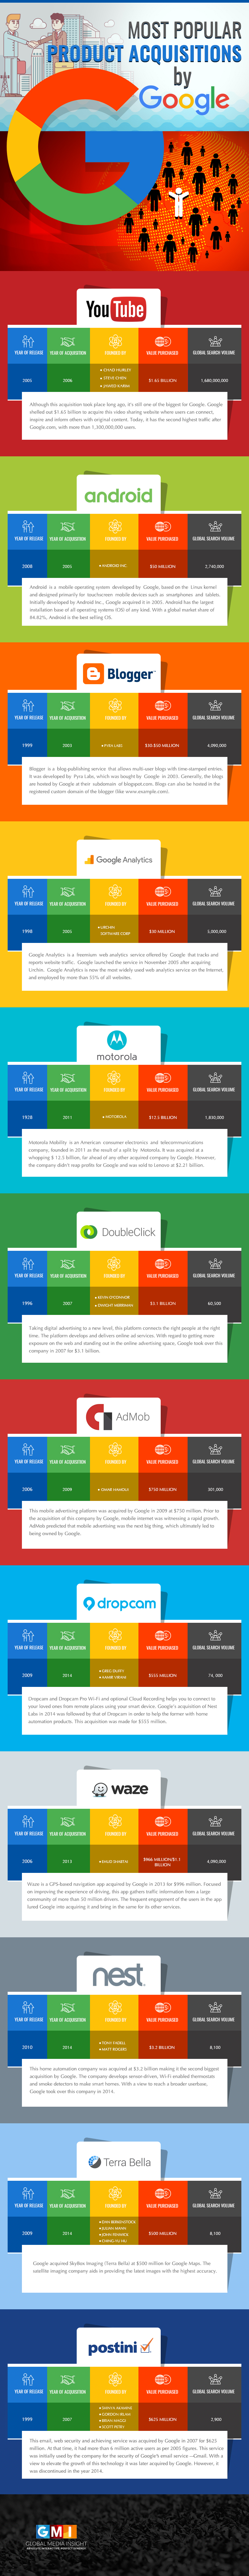 12-most-popular-Product-Acquisitions-by-Google-revised